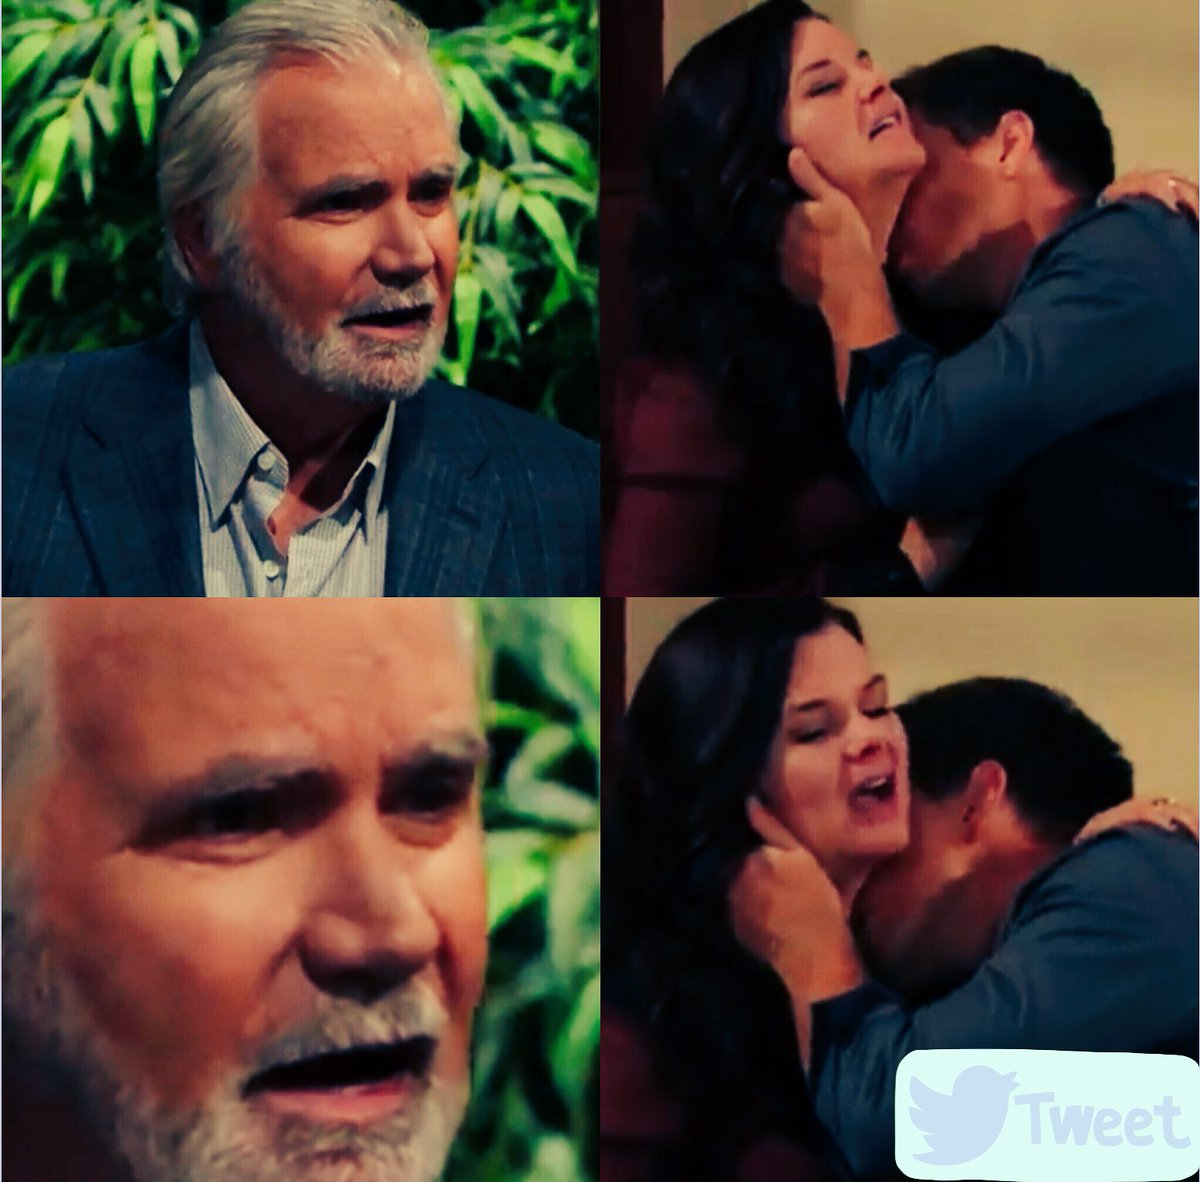 Eric got an eye full today!  #Waite #BoldandBeautiful<br>http://pic.twitter.com/ImJbaBHkAX